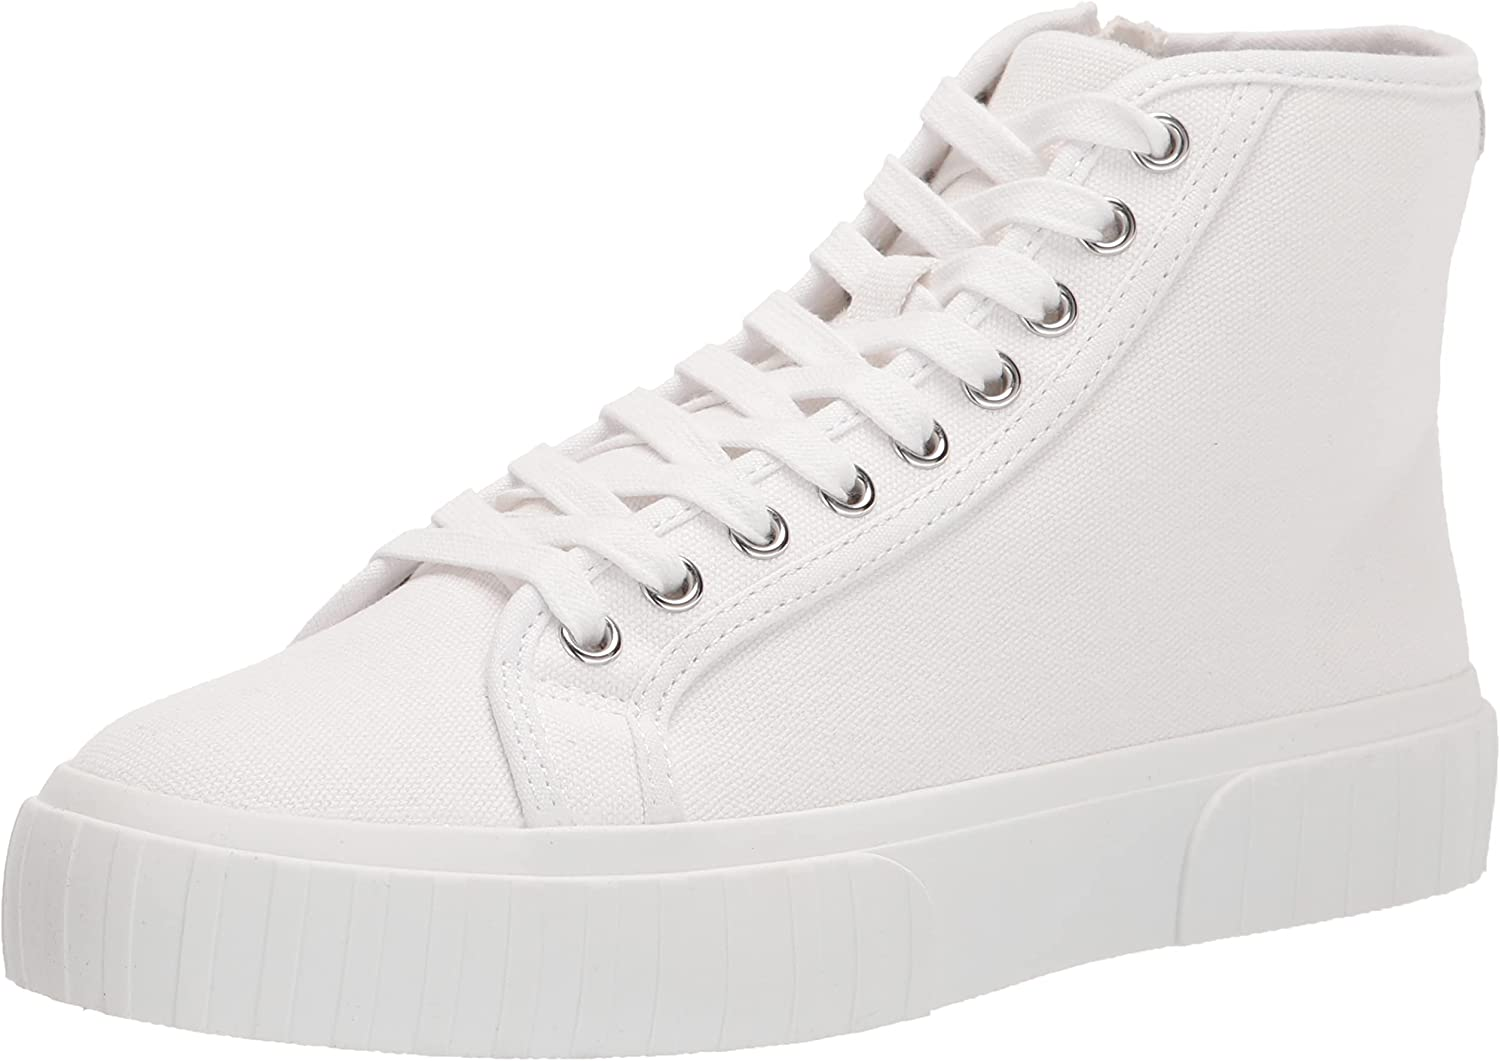 Steve Madden Max 45% Special Campaign OFF Women's Chanced Sneaker